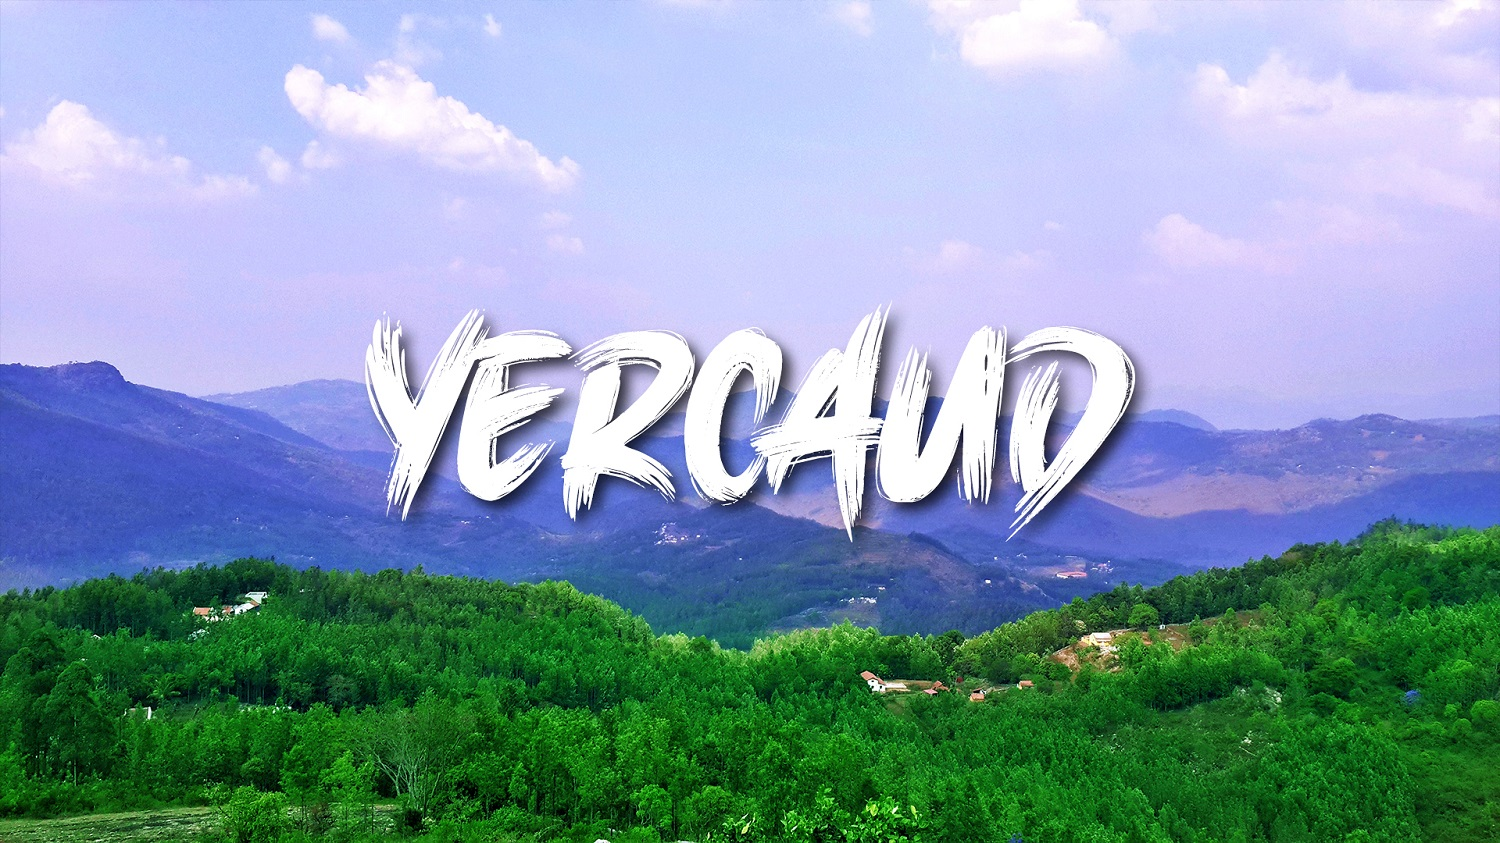 Yercaud - A Chill Station known for Education!